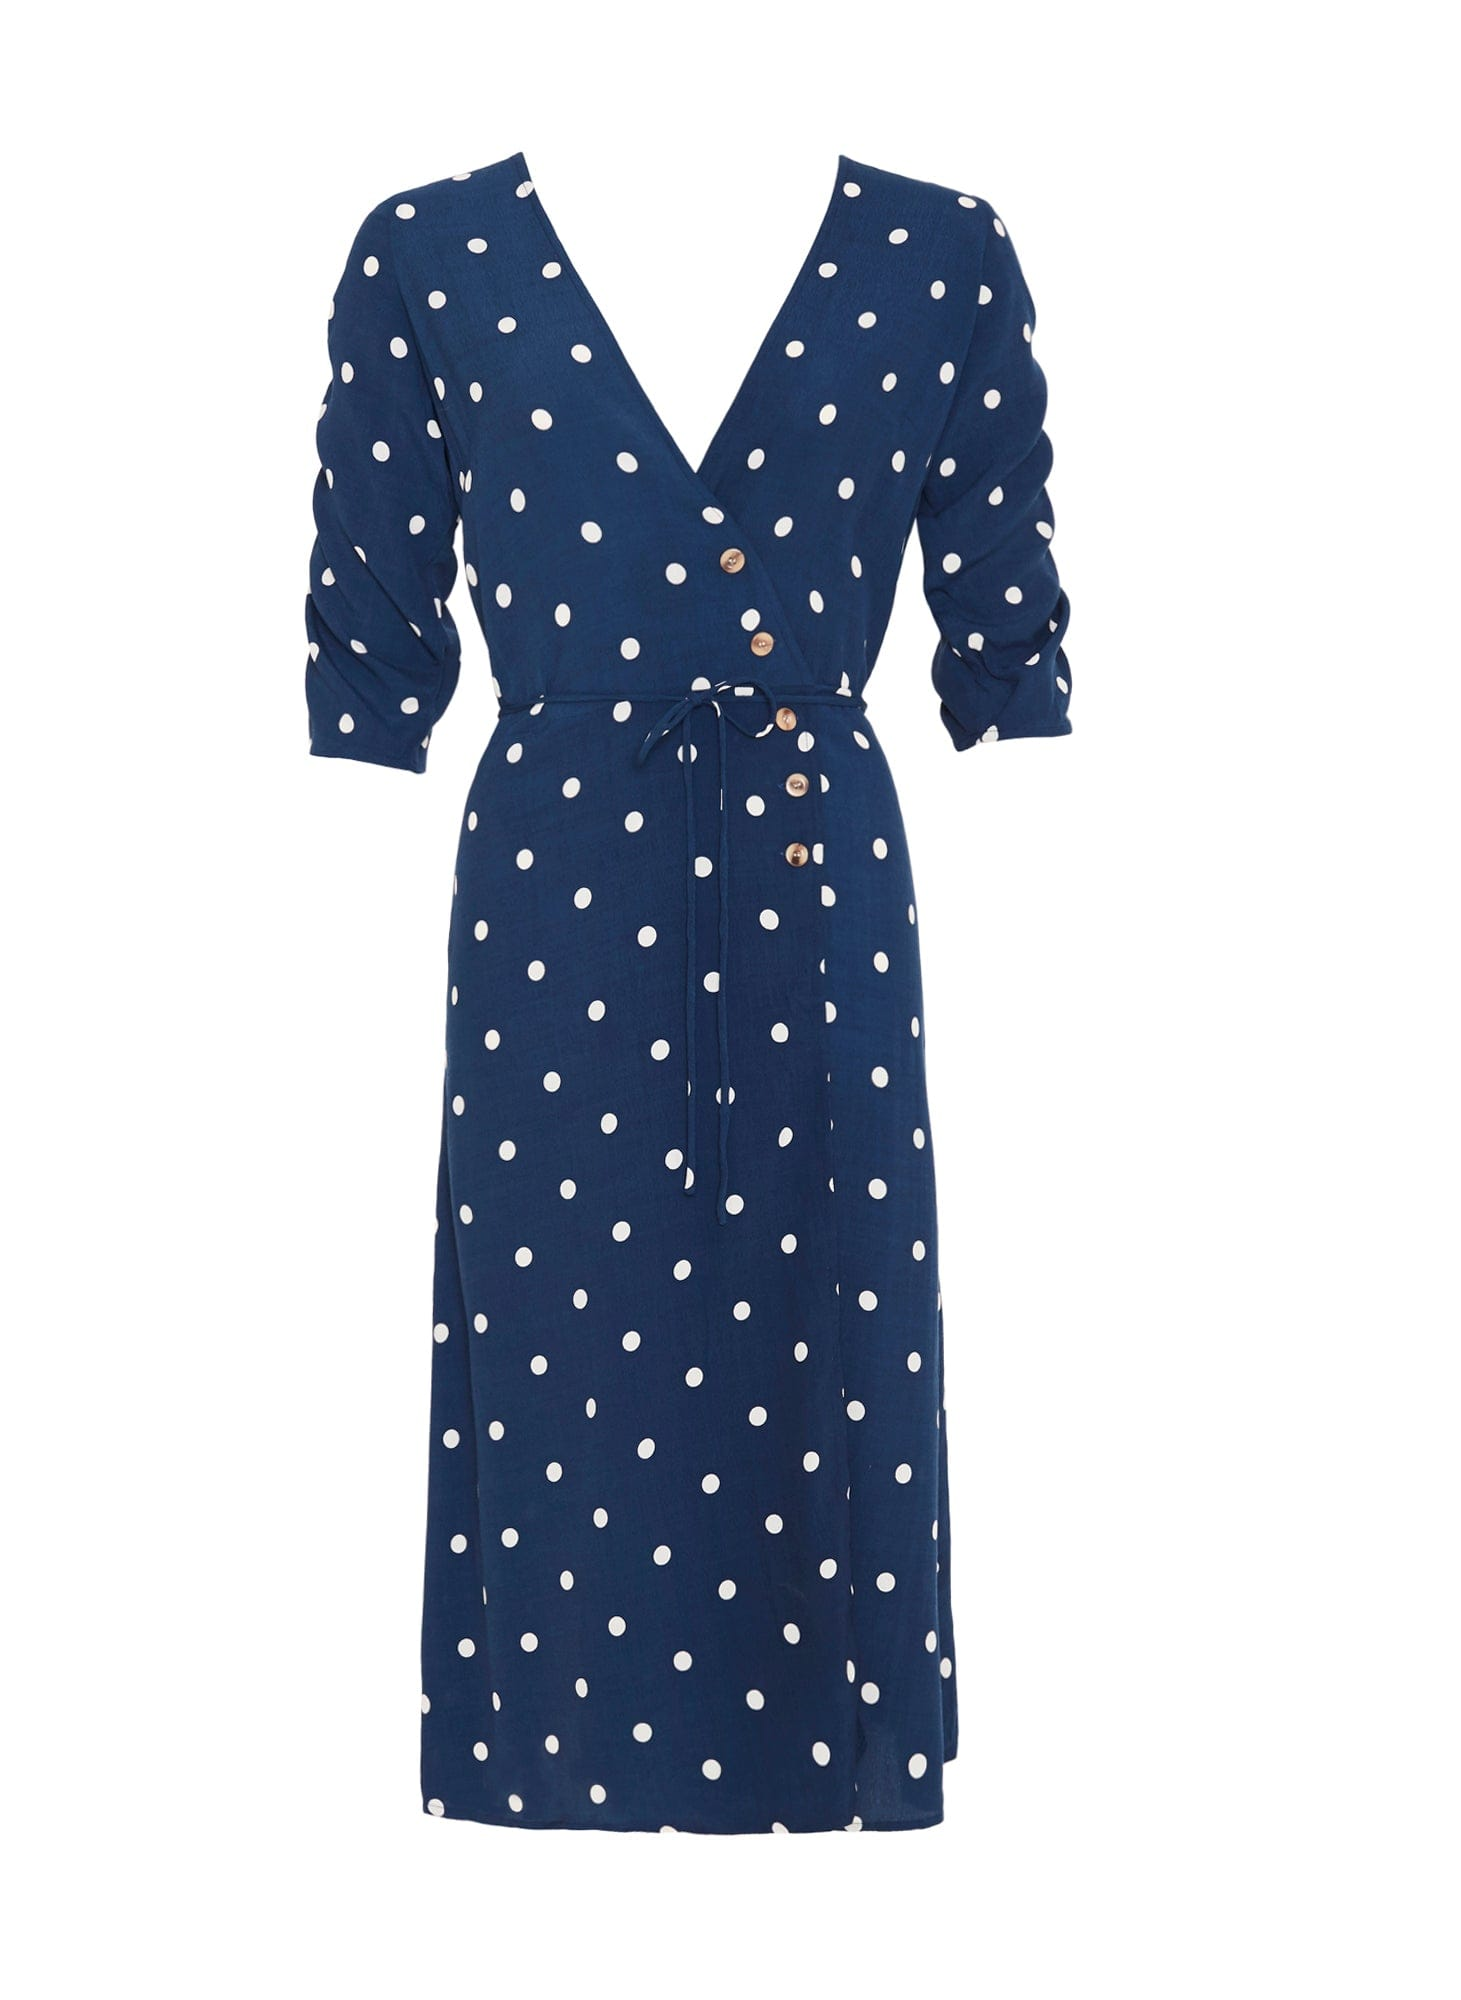 RONJA DOT PRINT - VINTAGE BLUE - ANNE MARIE MIDI DRESS